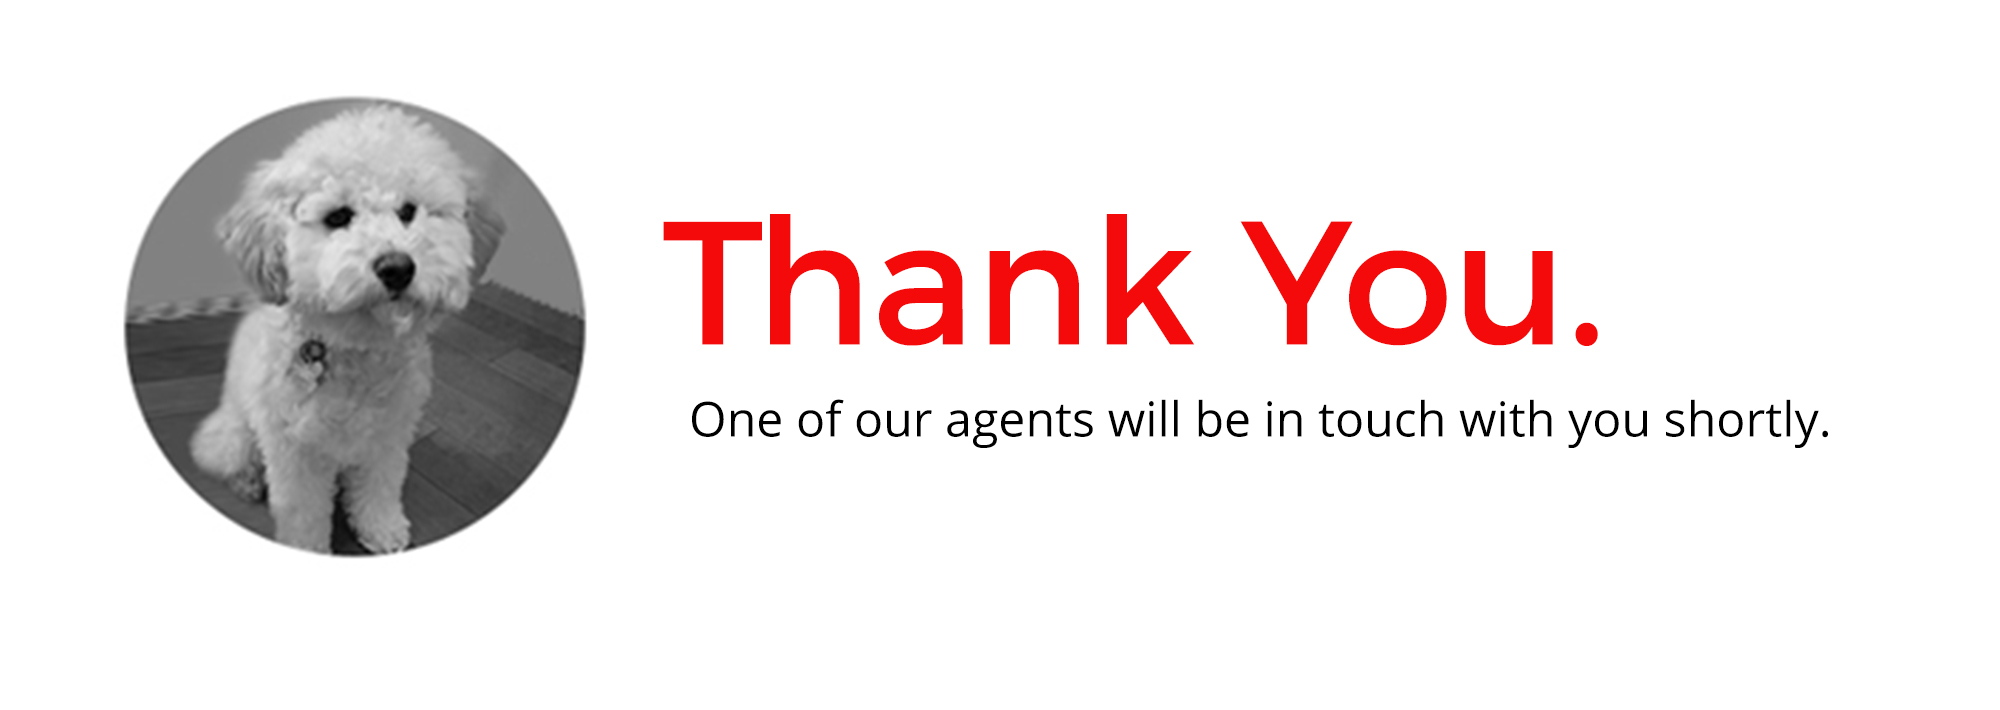 Thank you from Rosie and the Email Company Team